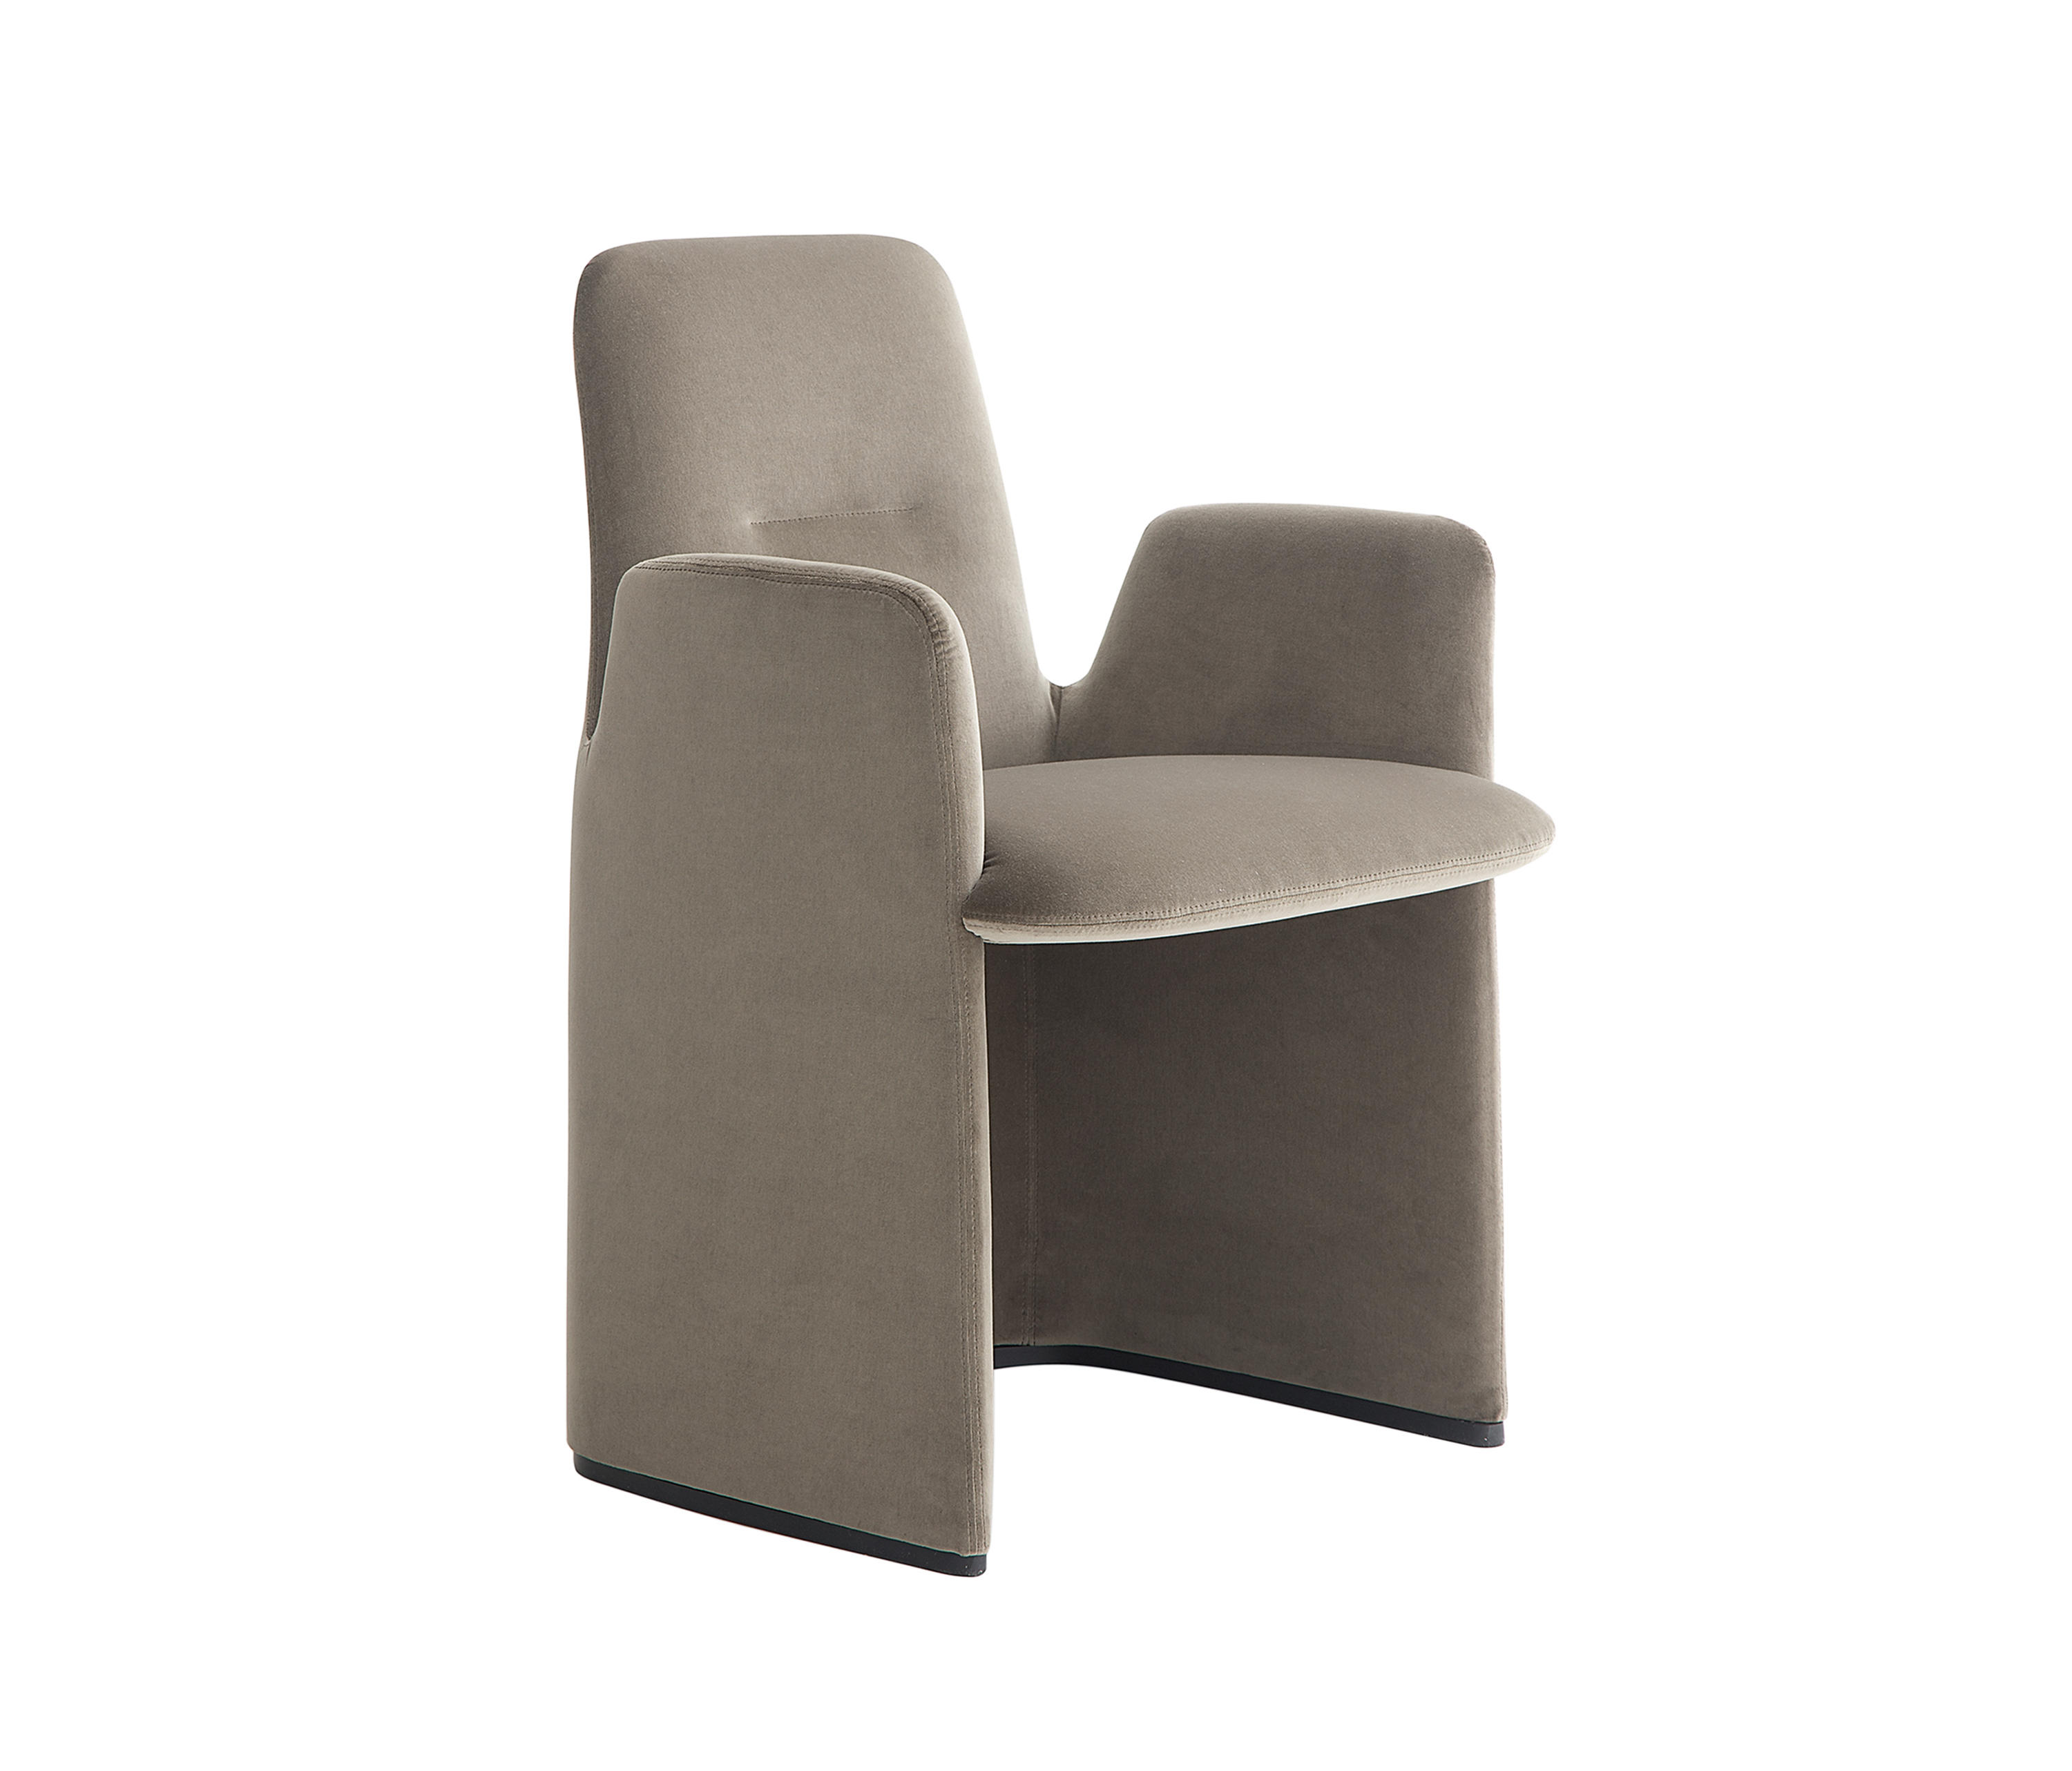 GUEST ARMCHAIR Chairs from Poliform